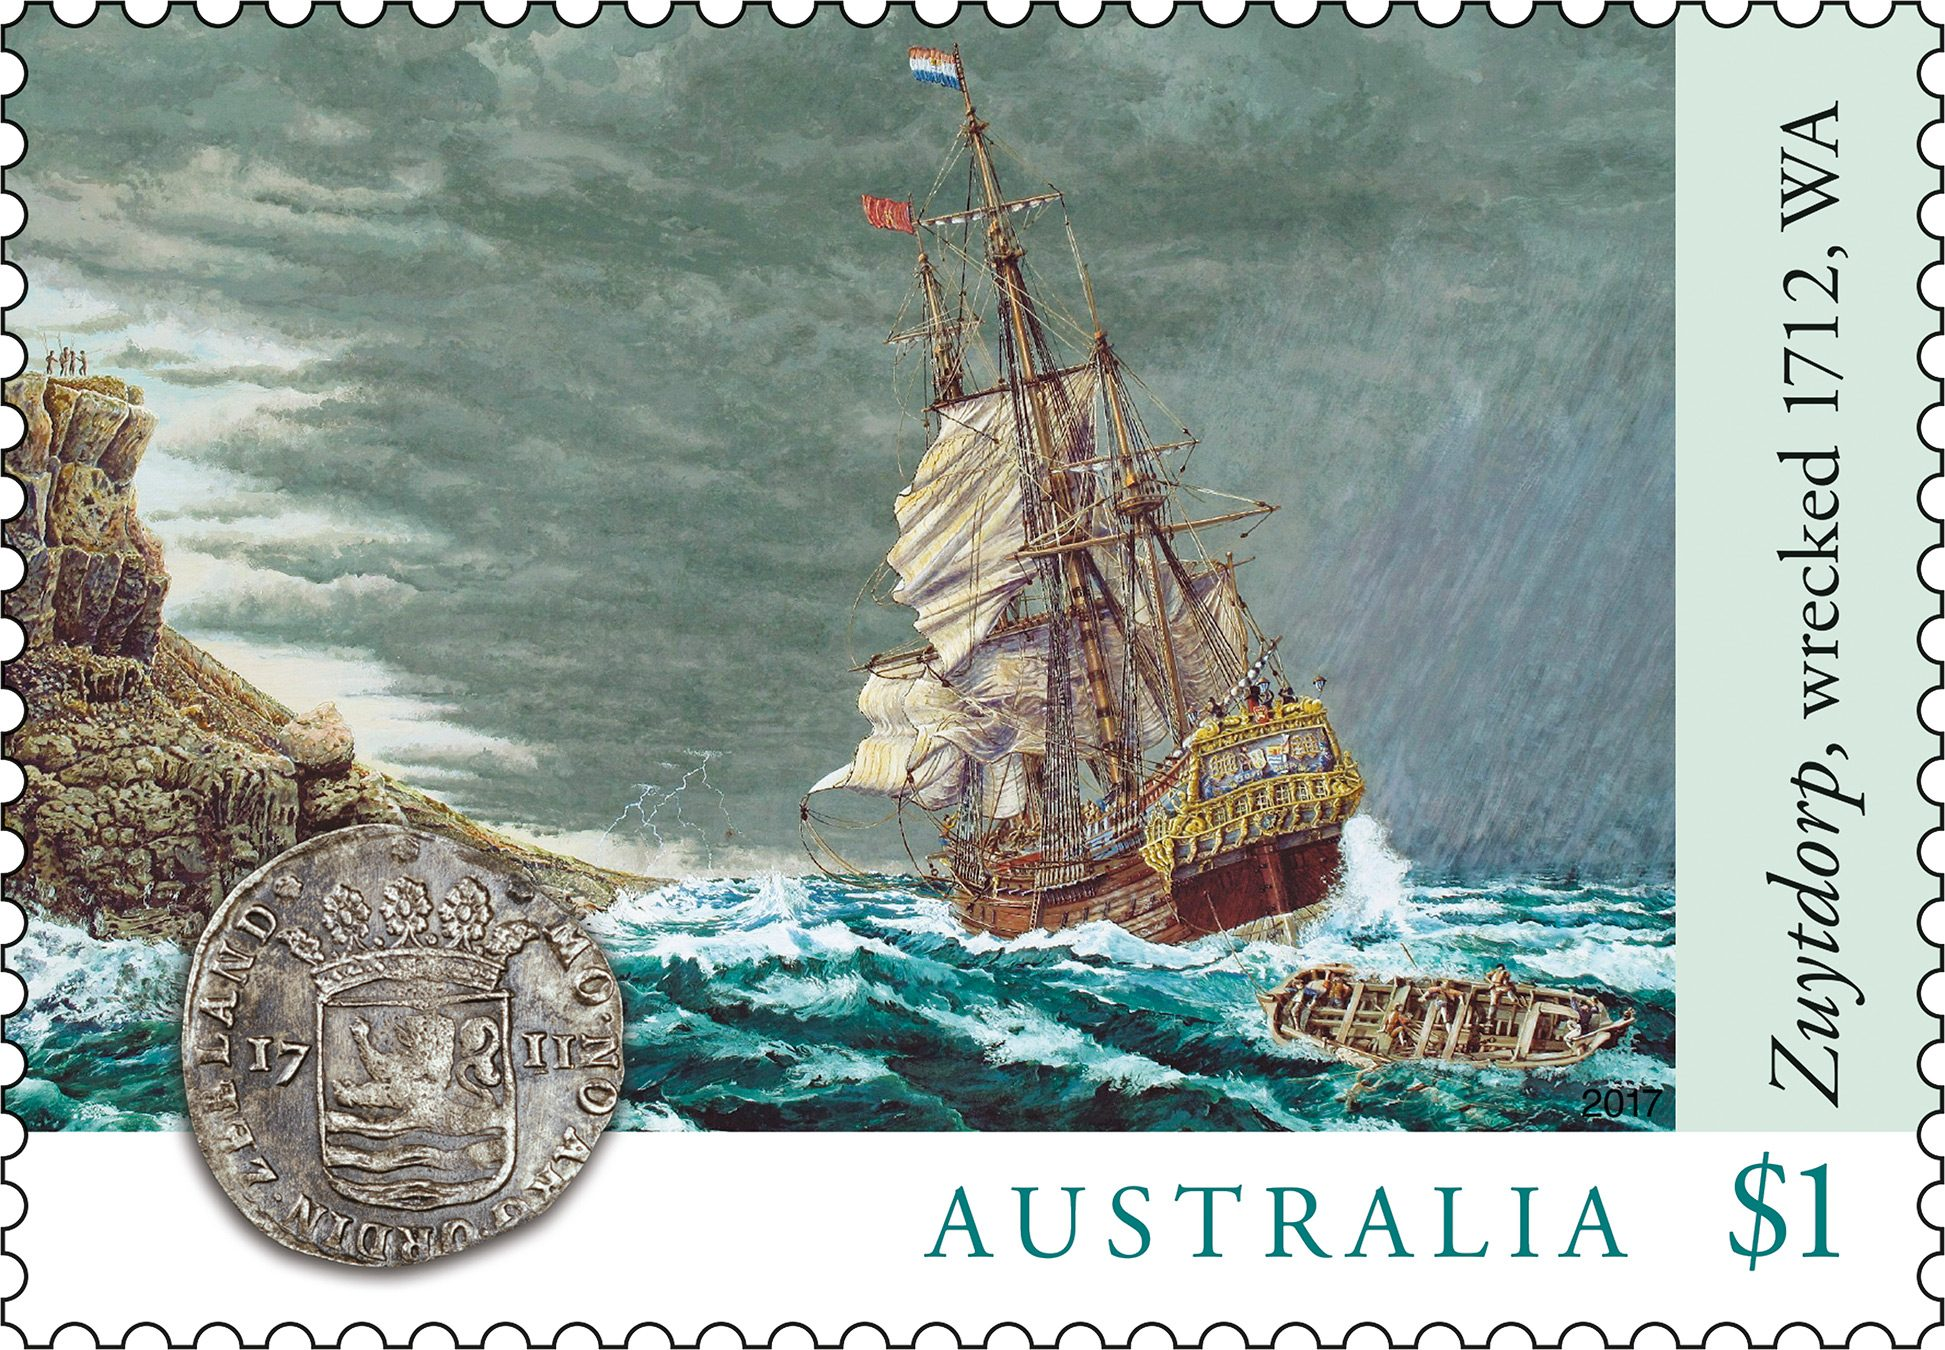 Shipwrecks: Capturing our maritime past - Part 1 - Australia